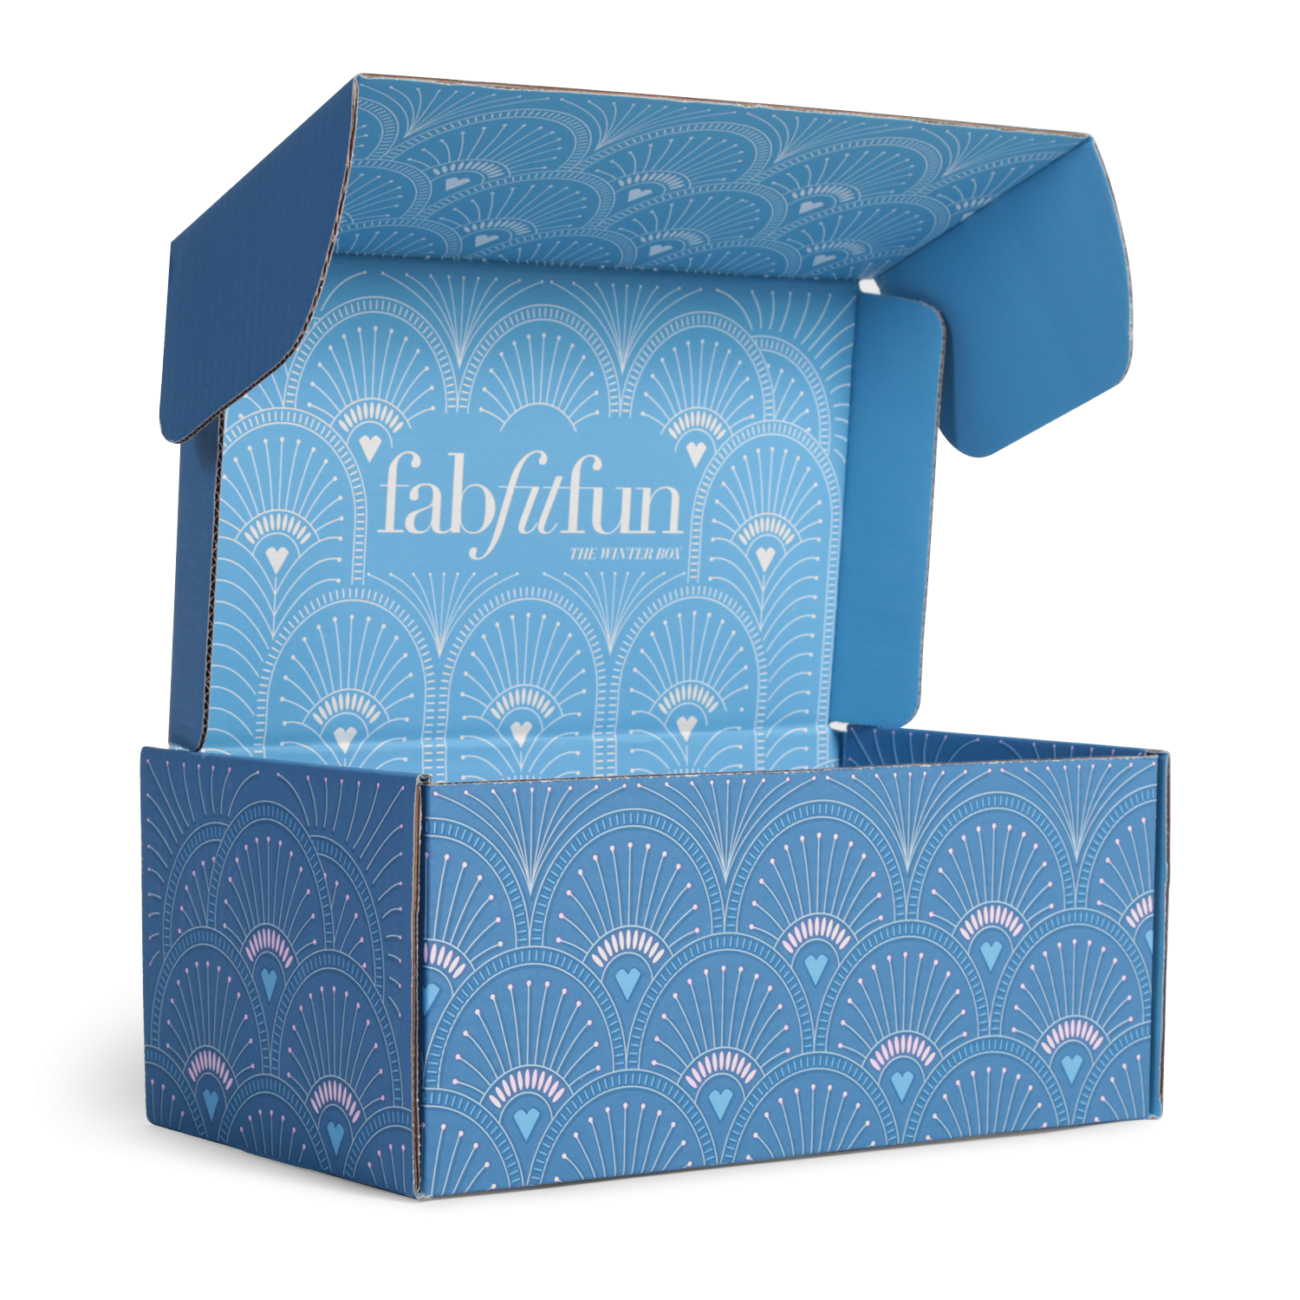 Custom roll end tuck front corrugated mailer box with roll end base, cherry locks, dust flaps, tuck front lid. Flexography on mottled white liner.